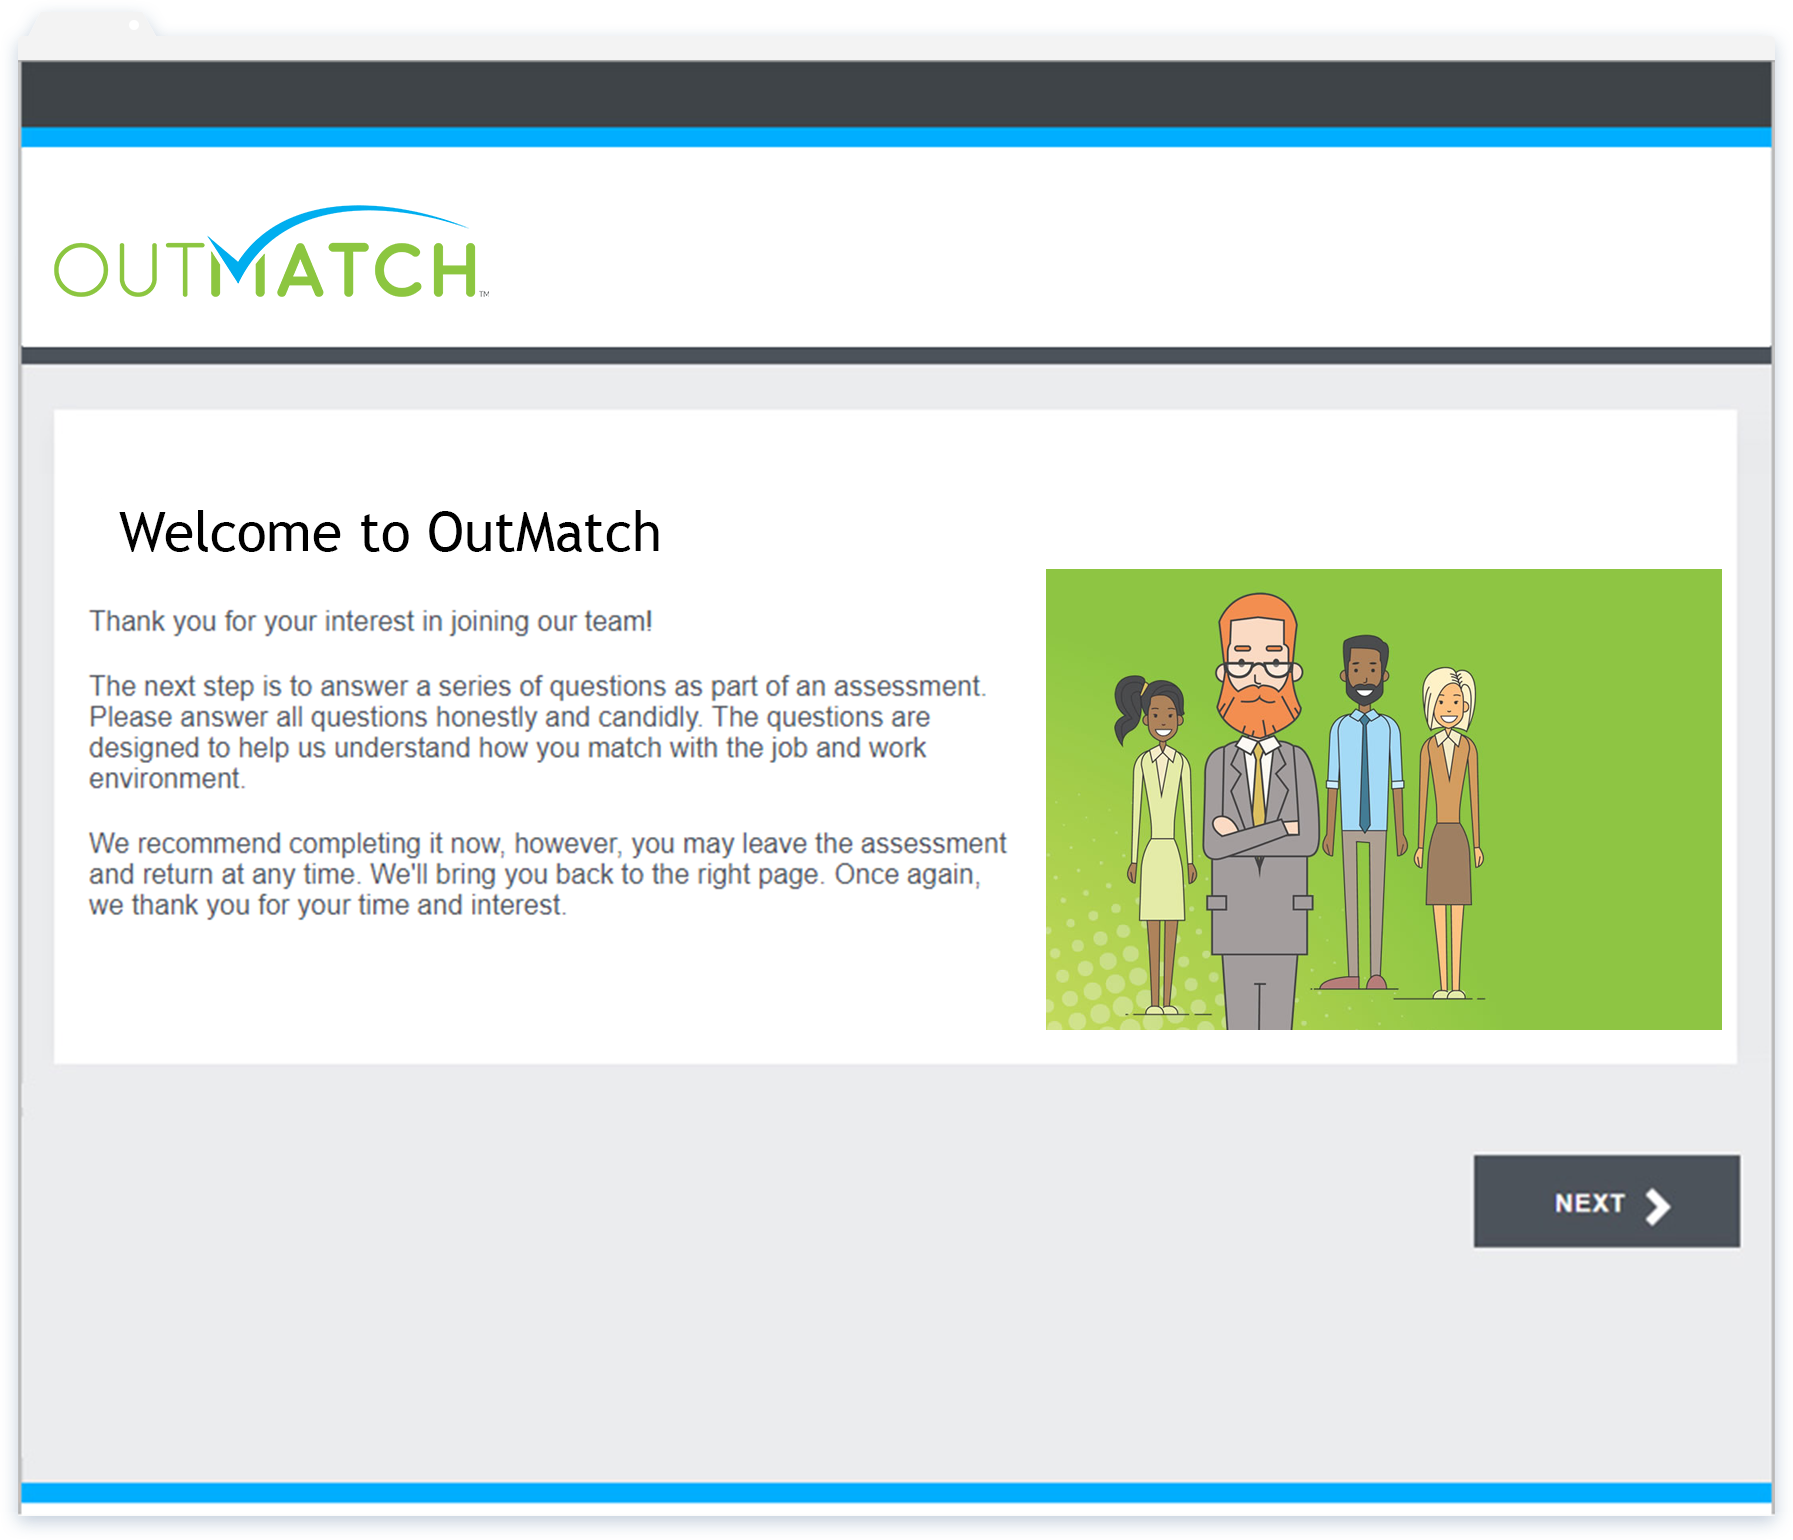 Customizable assessments allow for own branding, theme colors, recruitment messages, photos and videos to be applied